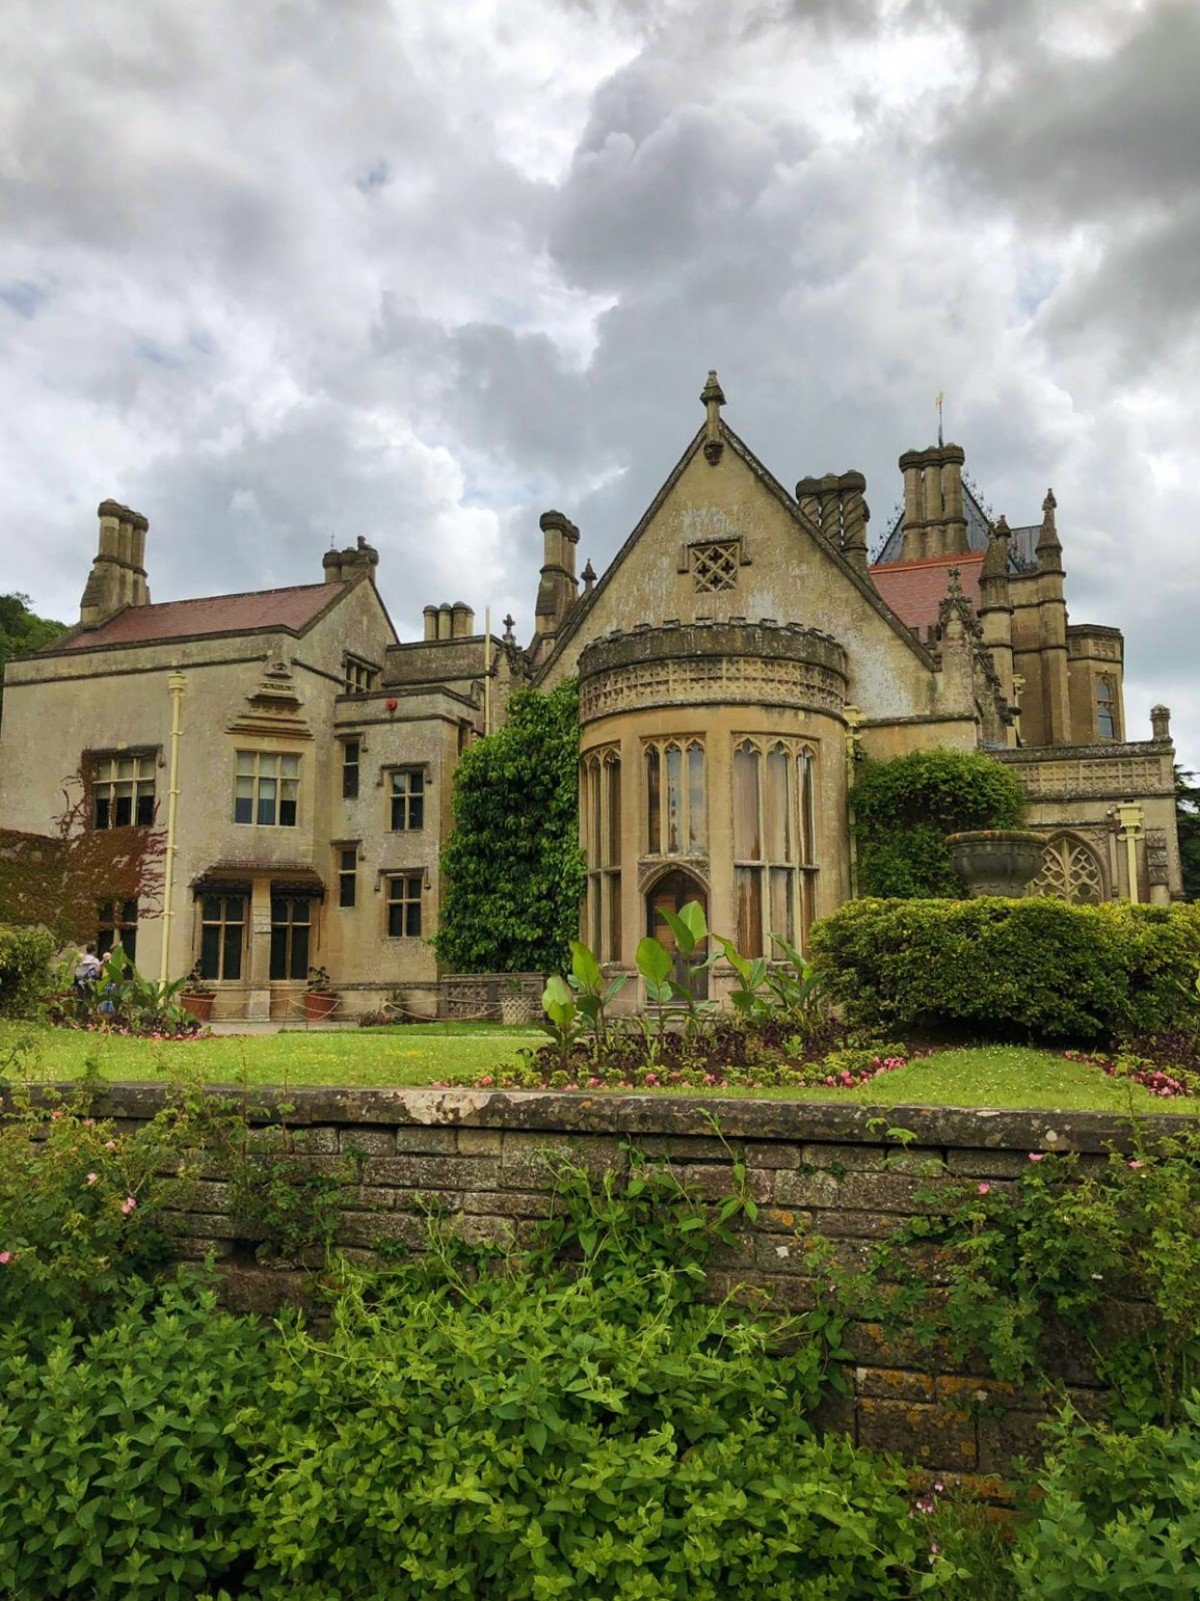 Tyntesfield National Trust Day Out